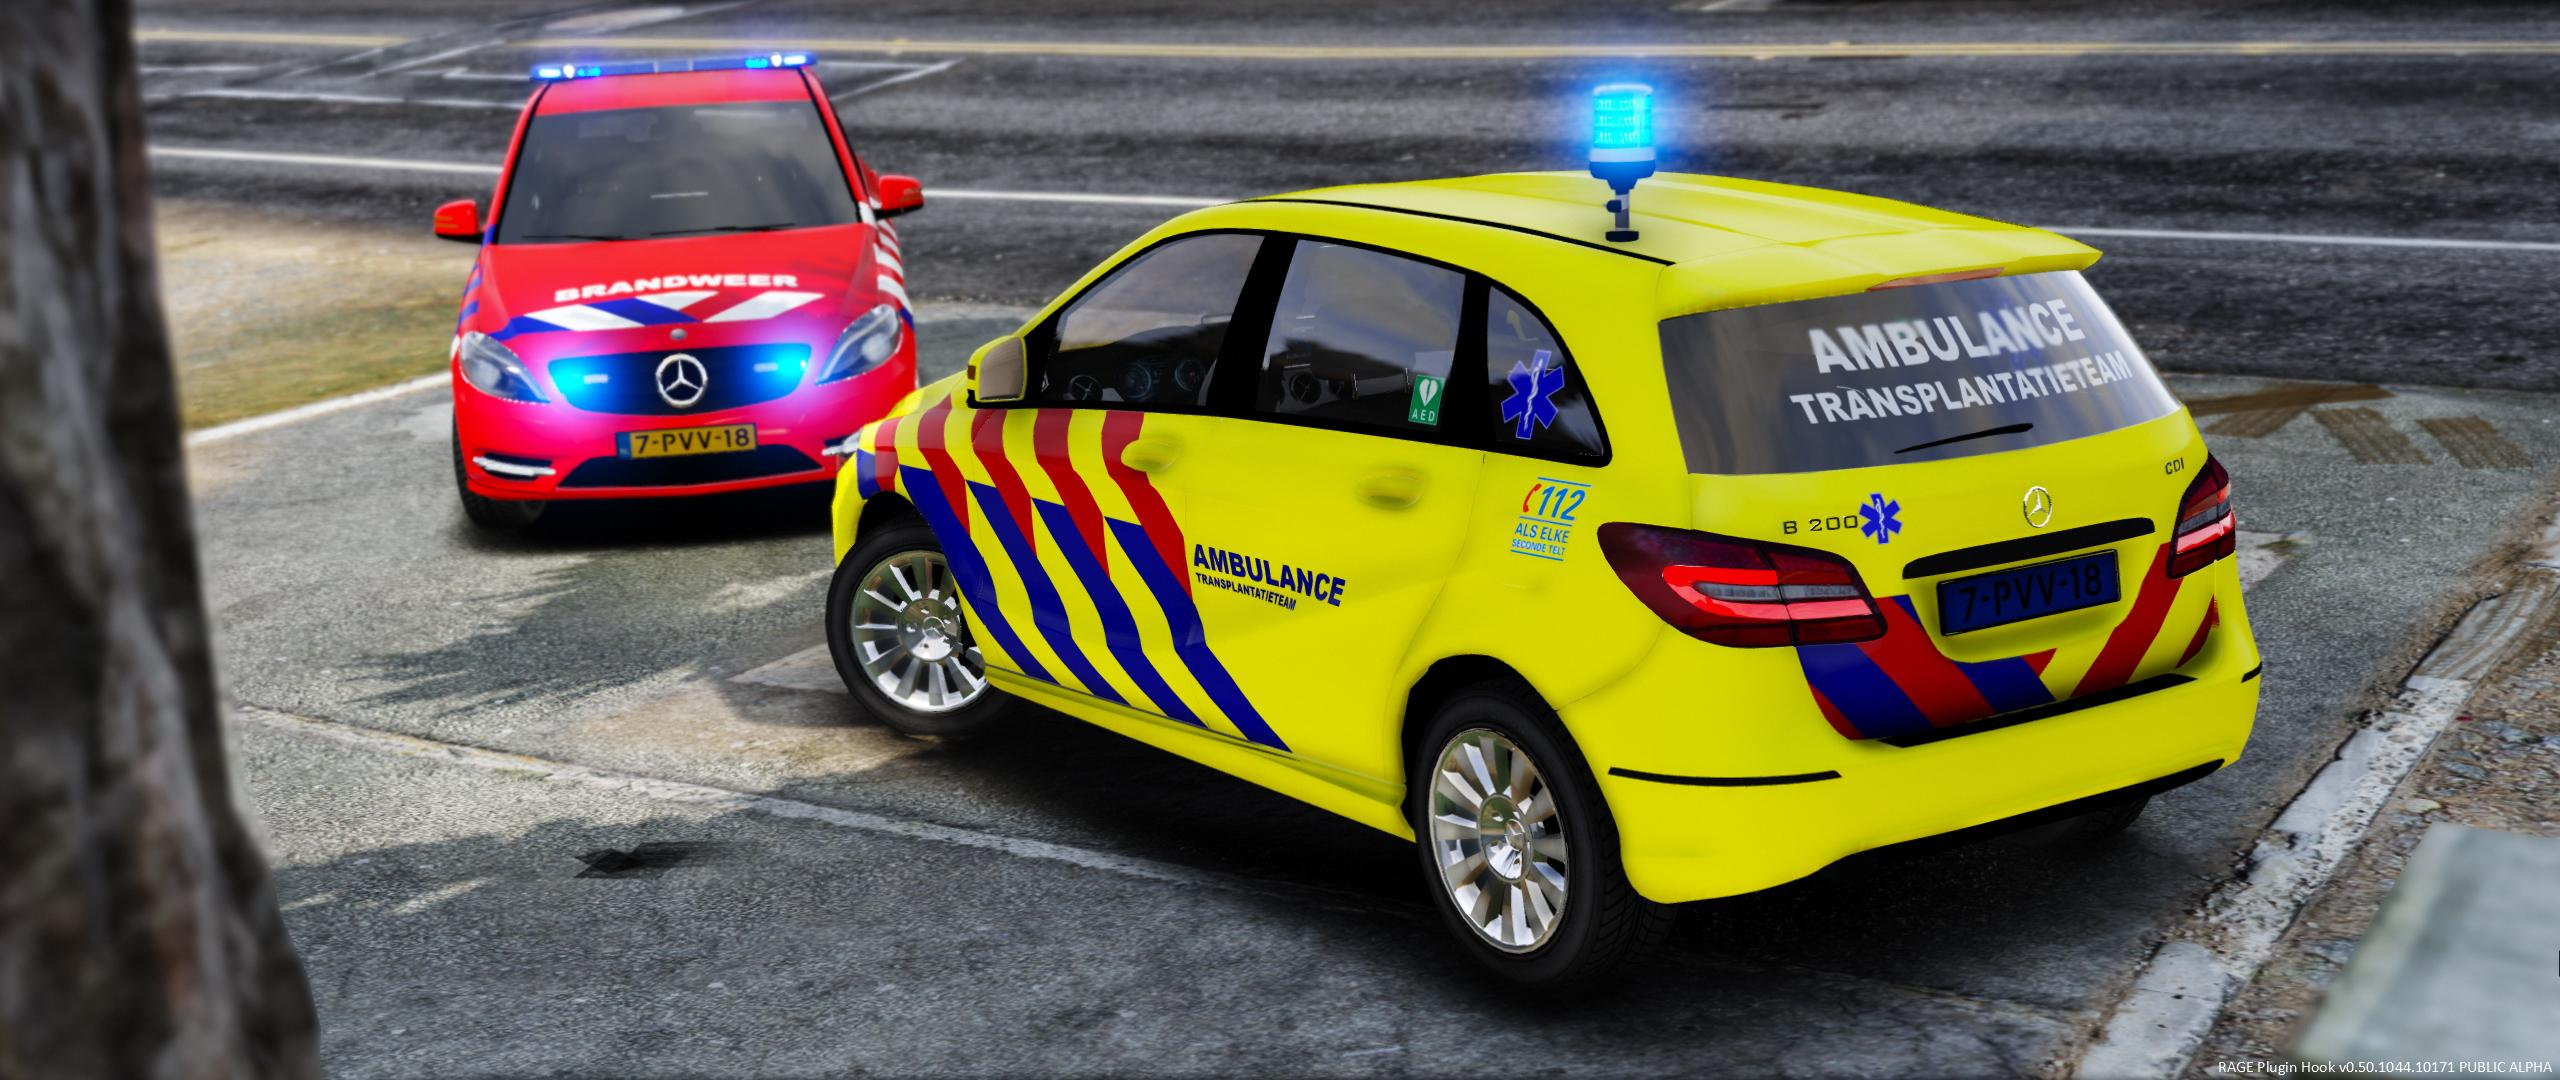 Mercedes benz b klasse dutch fire ems service gta5 for What is the b service for mercedes benz